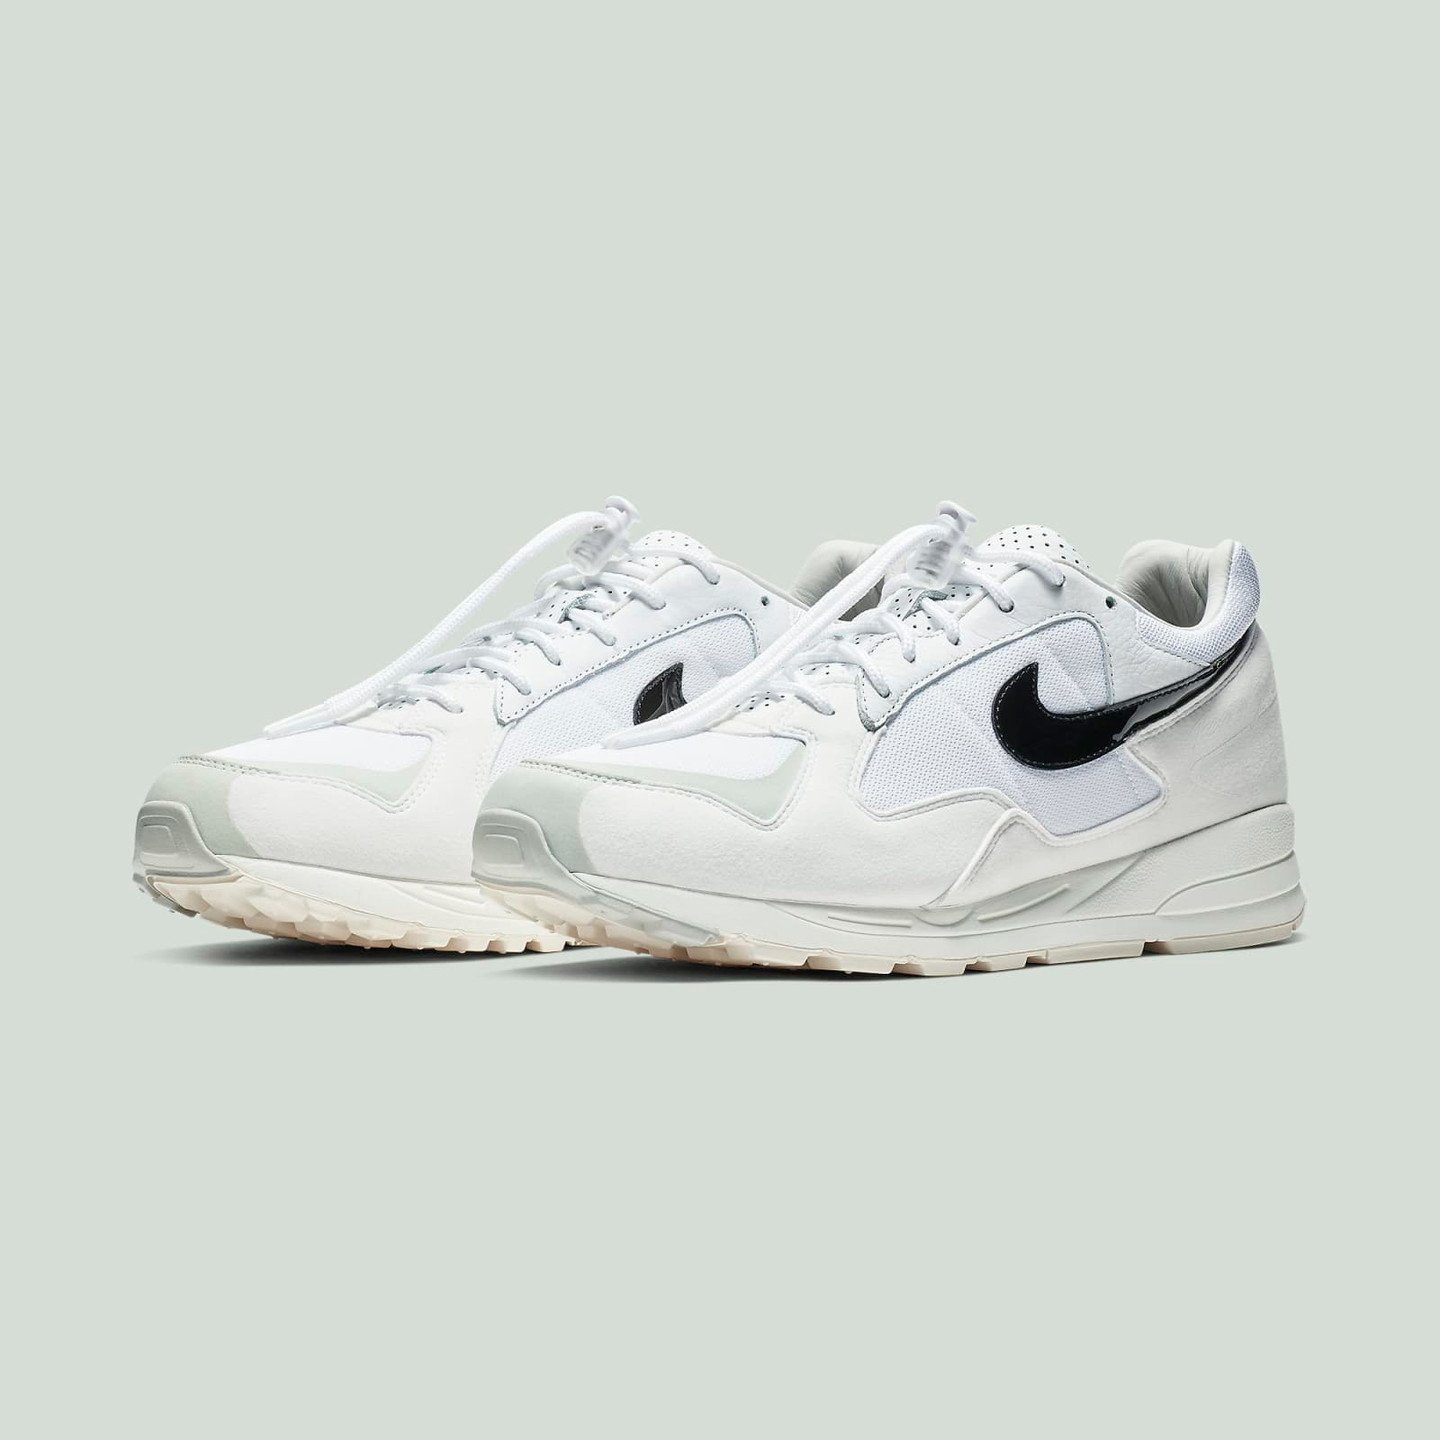 Nike Air Skylon II x Fear Of God White / Black / Light Bone / Sail BQ2752-100